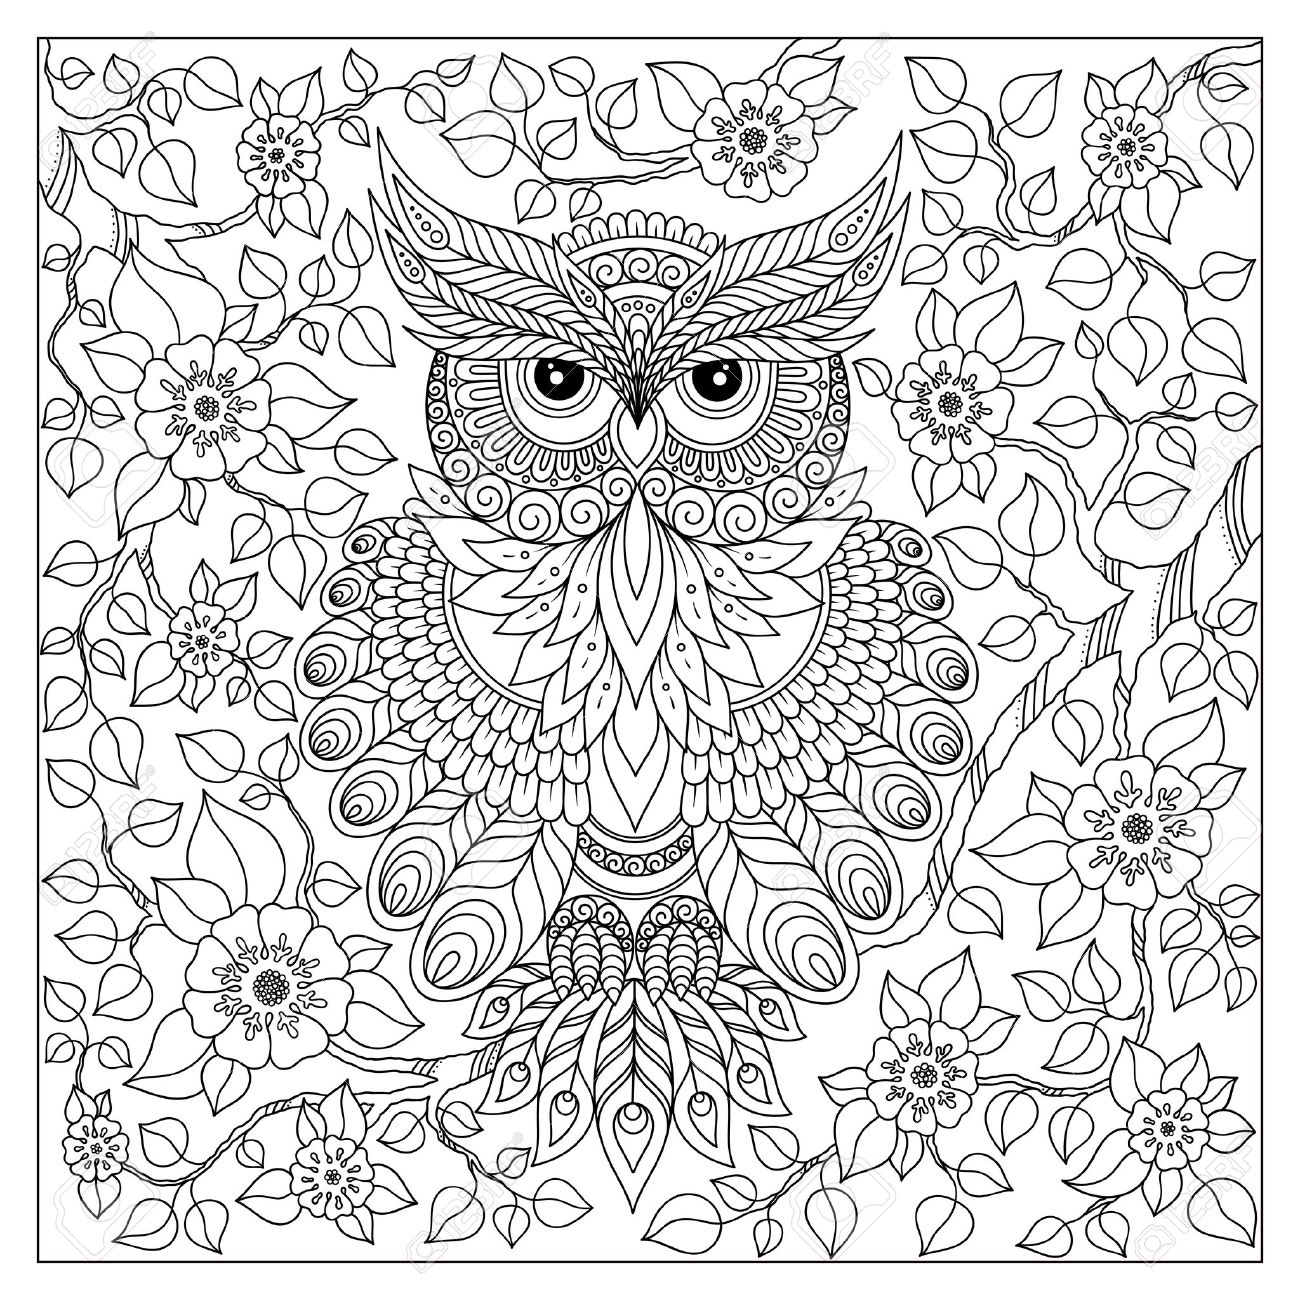 Coloring Book For Adult And Older Children. Coloring Page With Cute Owl And  Floral Frame